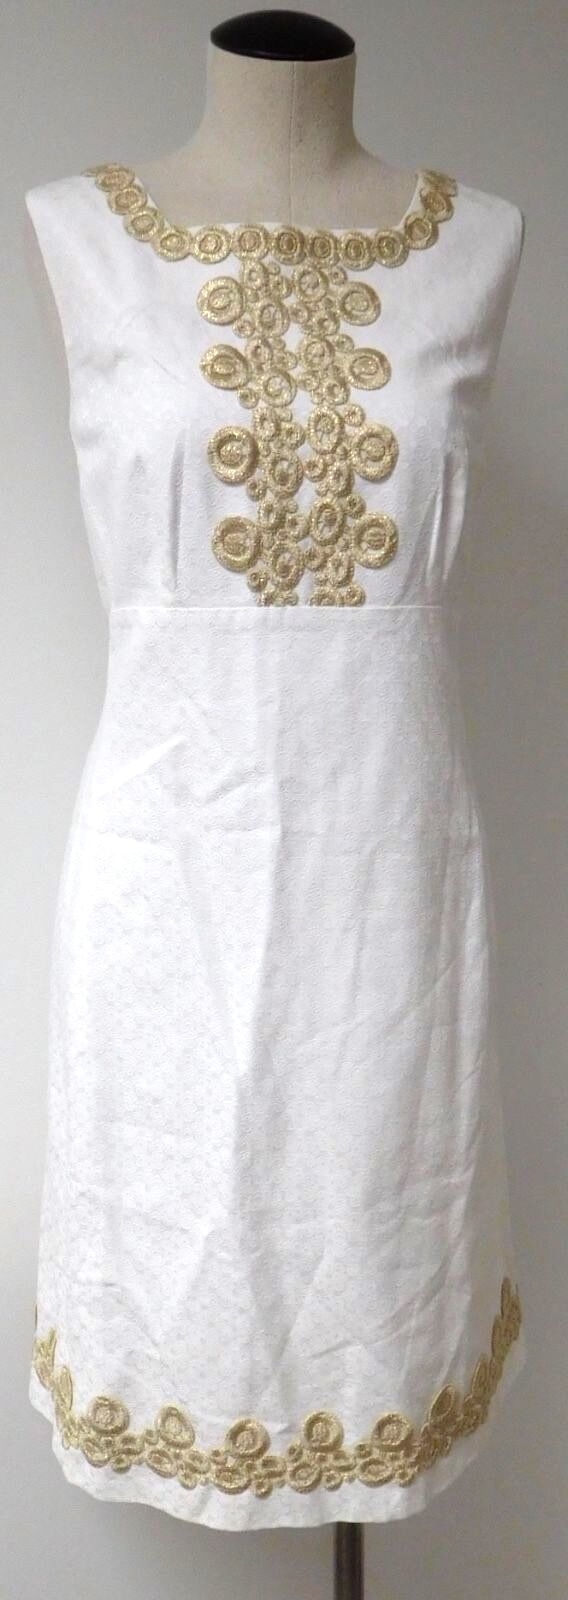 LILLY PULITZER ADELSON SHIFT DRESS CLASSIC WHITE JACQUARD COTTON W  gold TRIM 14